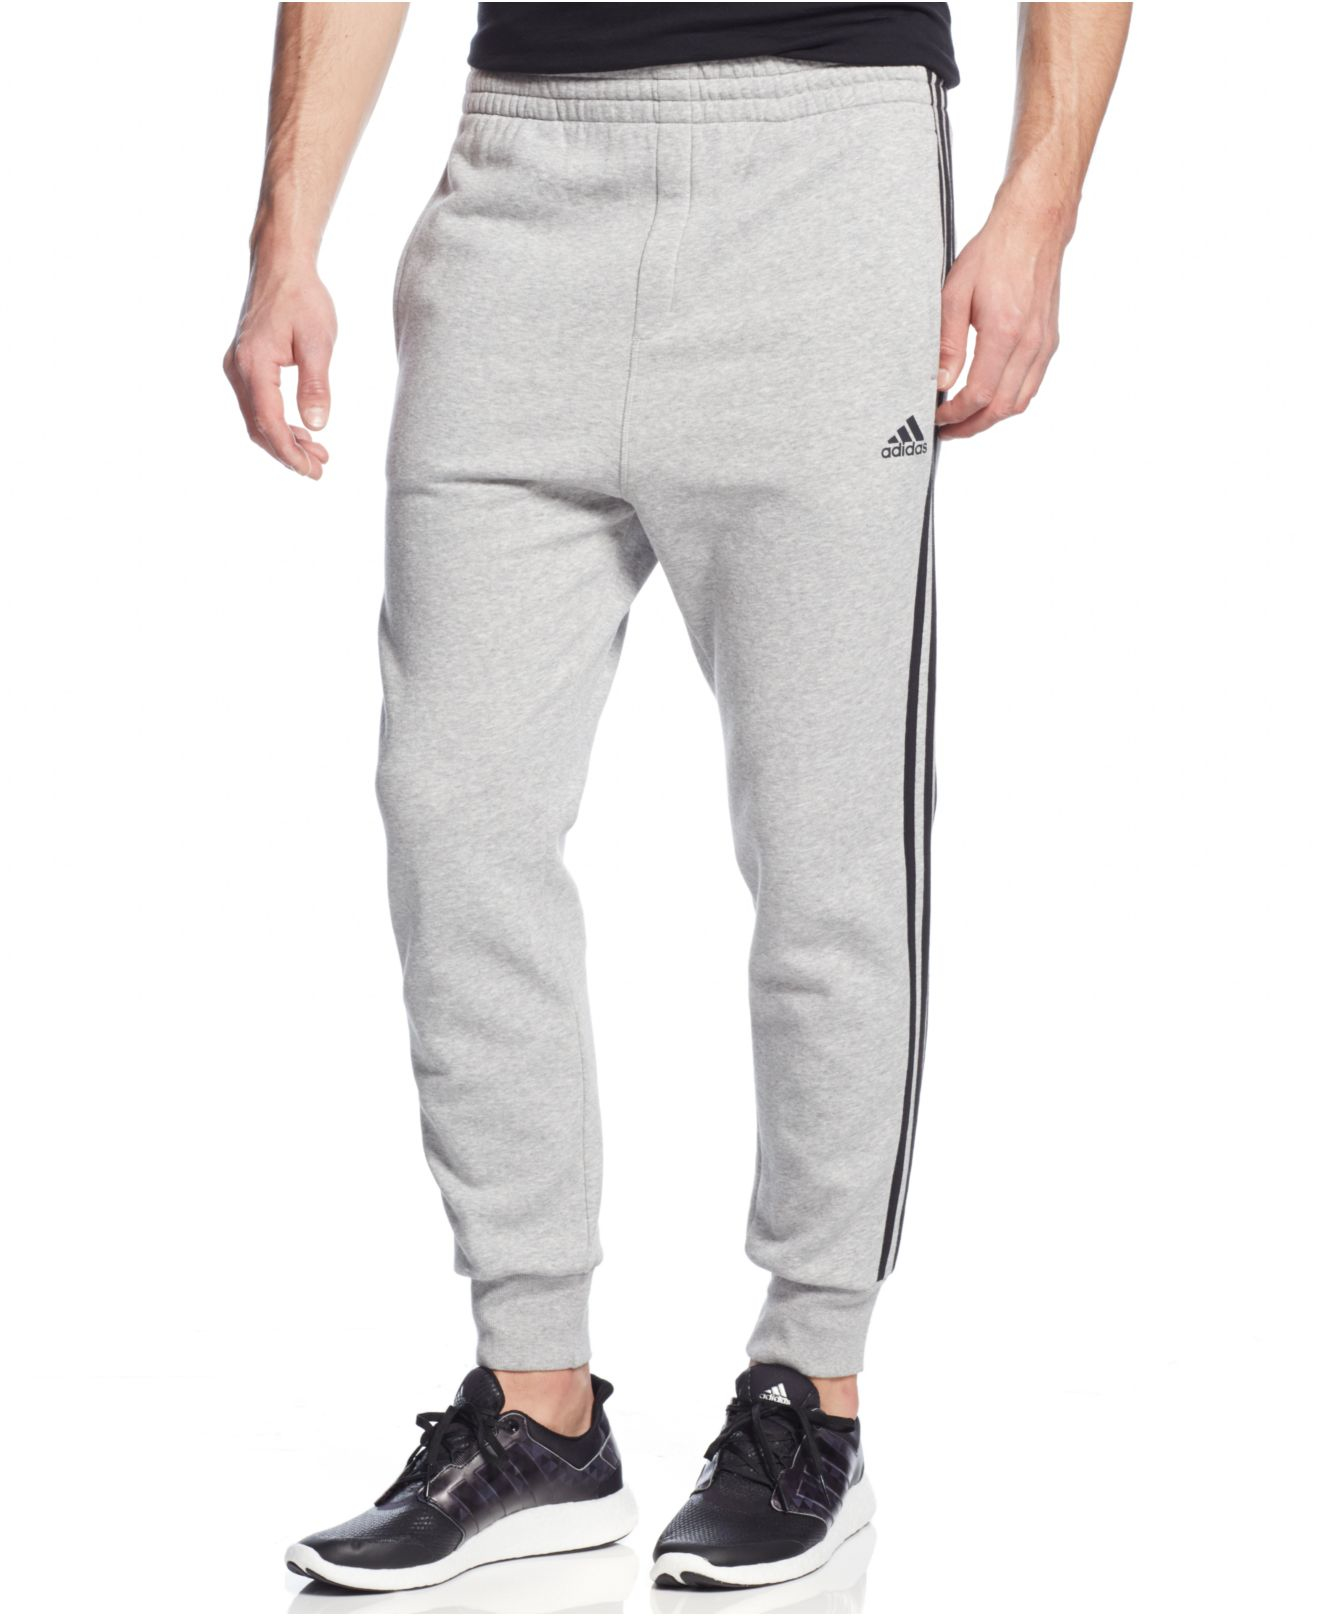 91129947a adidas Striped Slim-fit Sweatpants in Blue for Men - Lyst